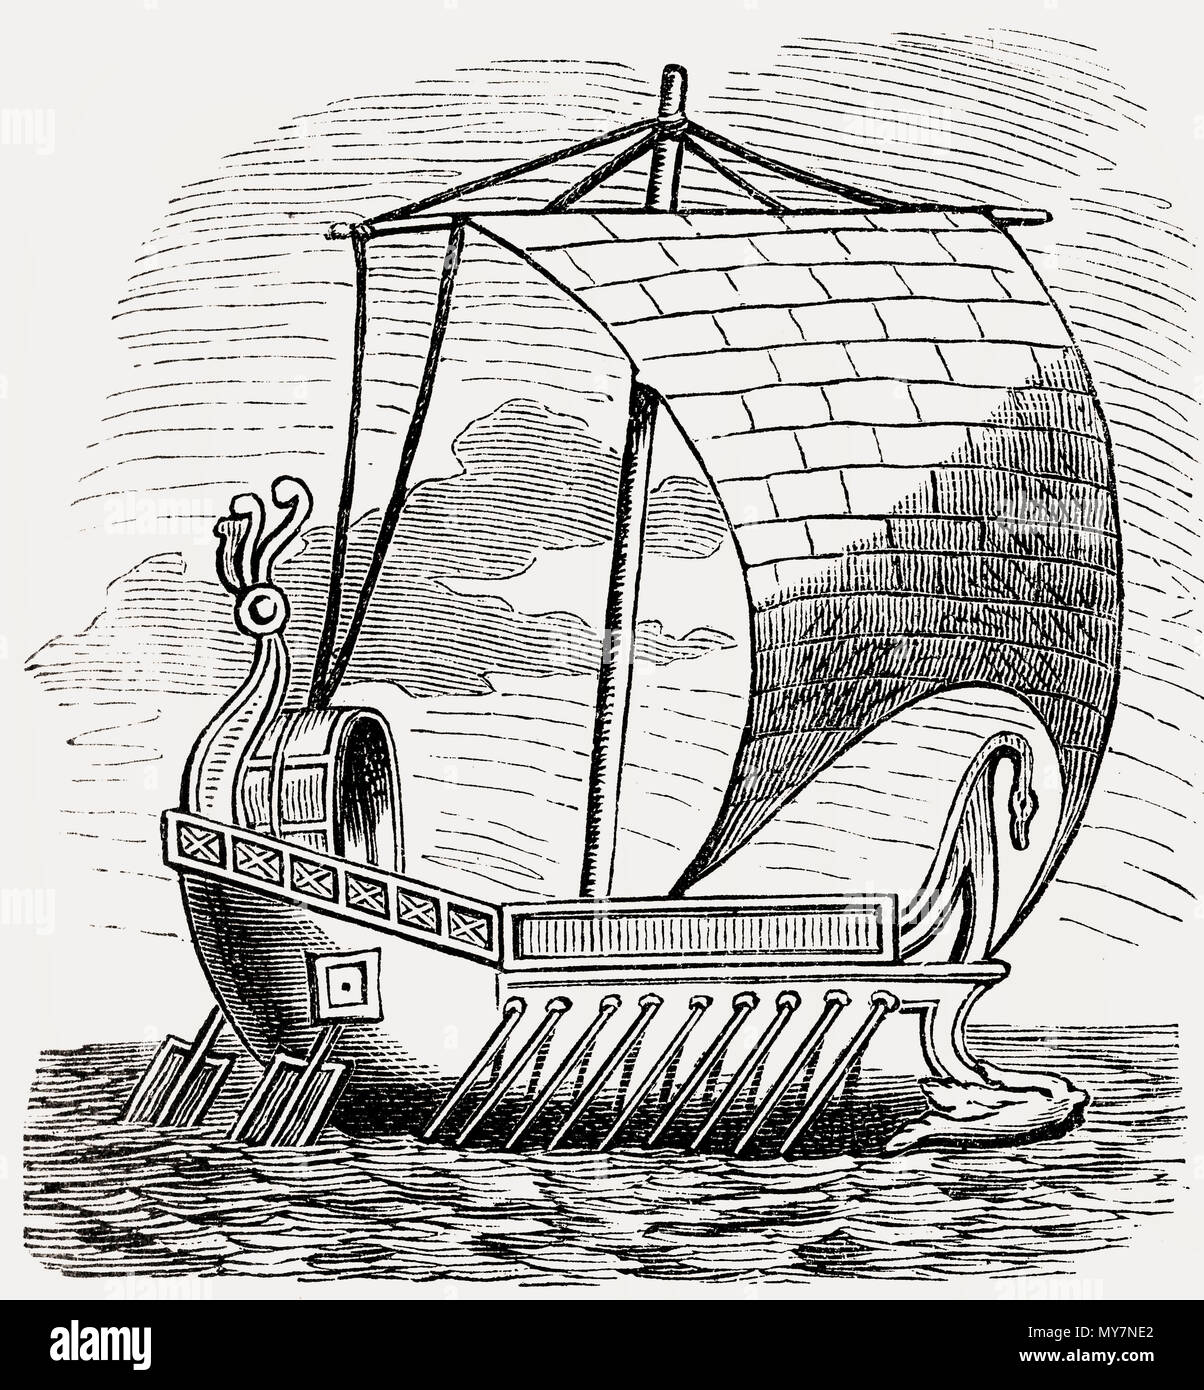 A scapha, ancient  Roman ship - Stock Image